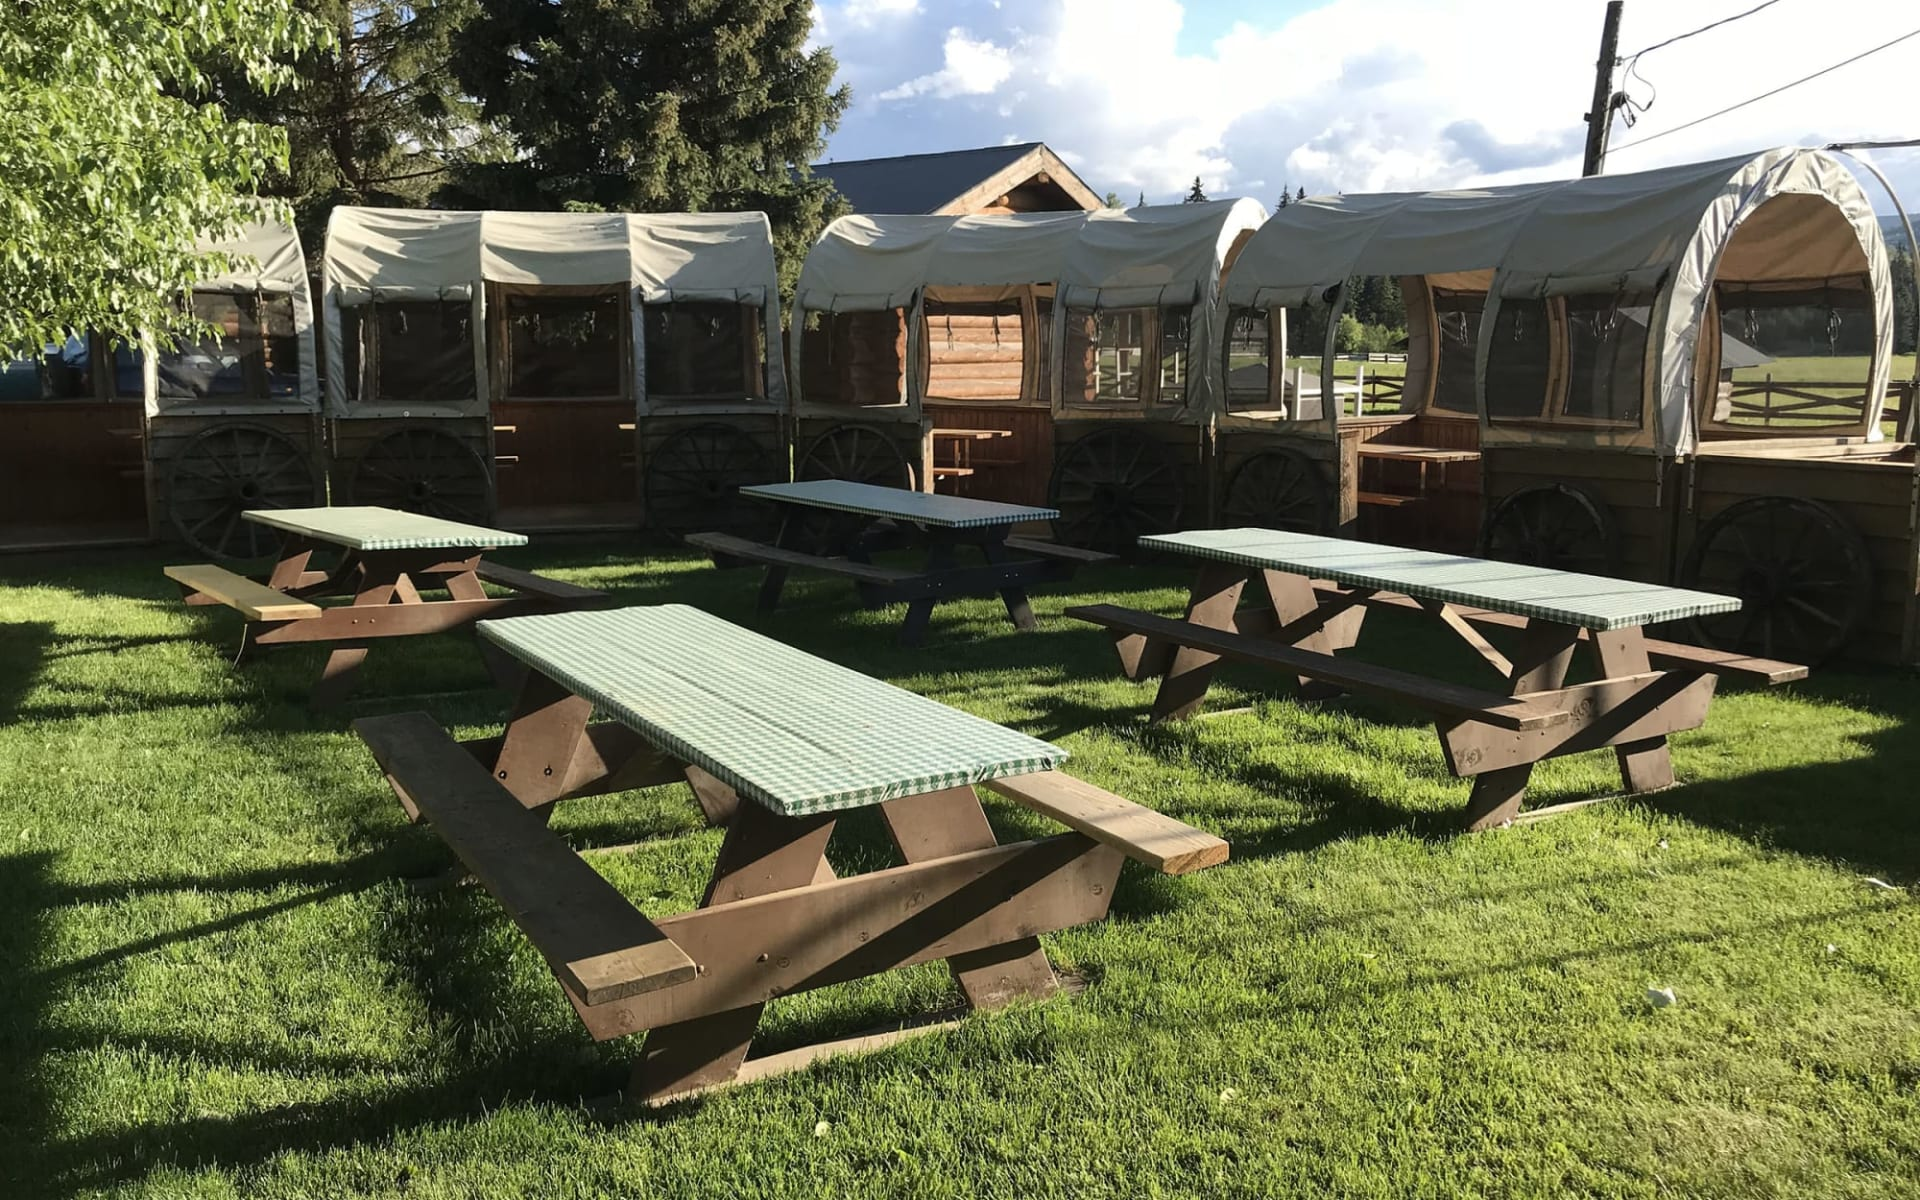 Wells Gray Guest Ranch in Clearwater: Facilities_Wells Gray Guest Ranch_Picnic Area_Jonview